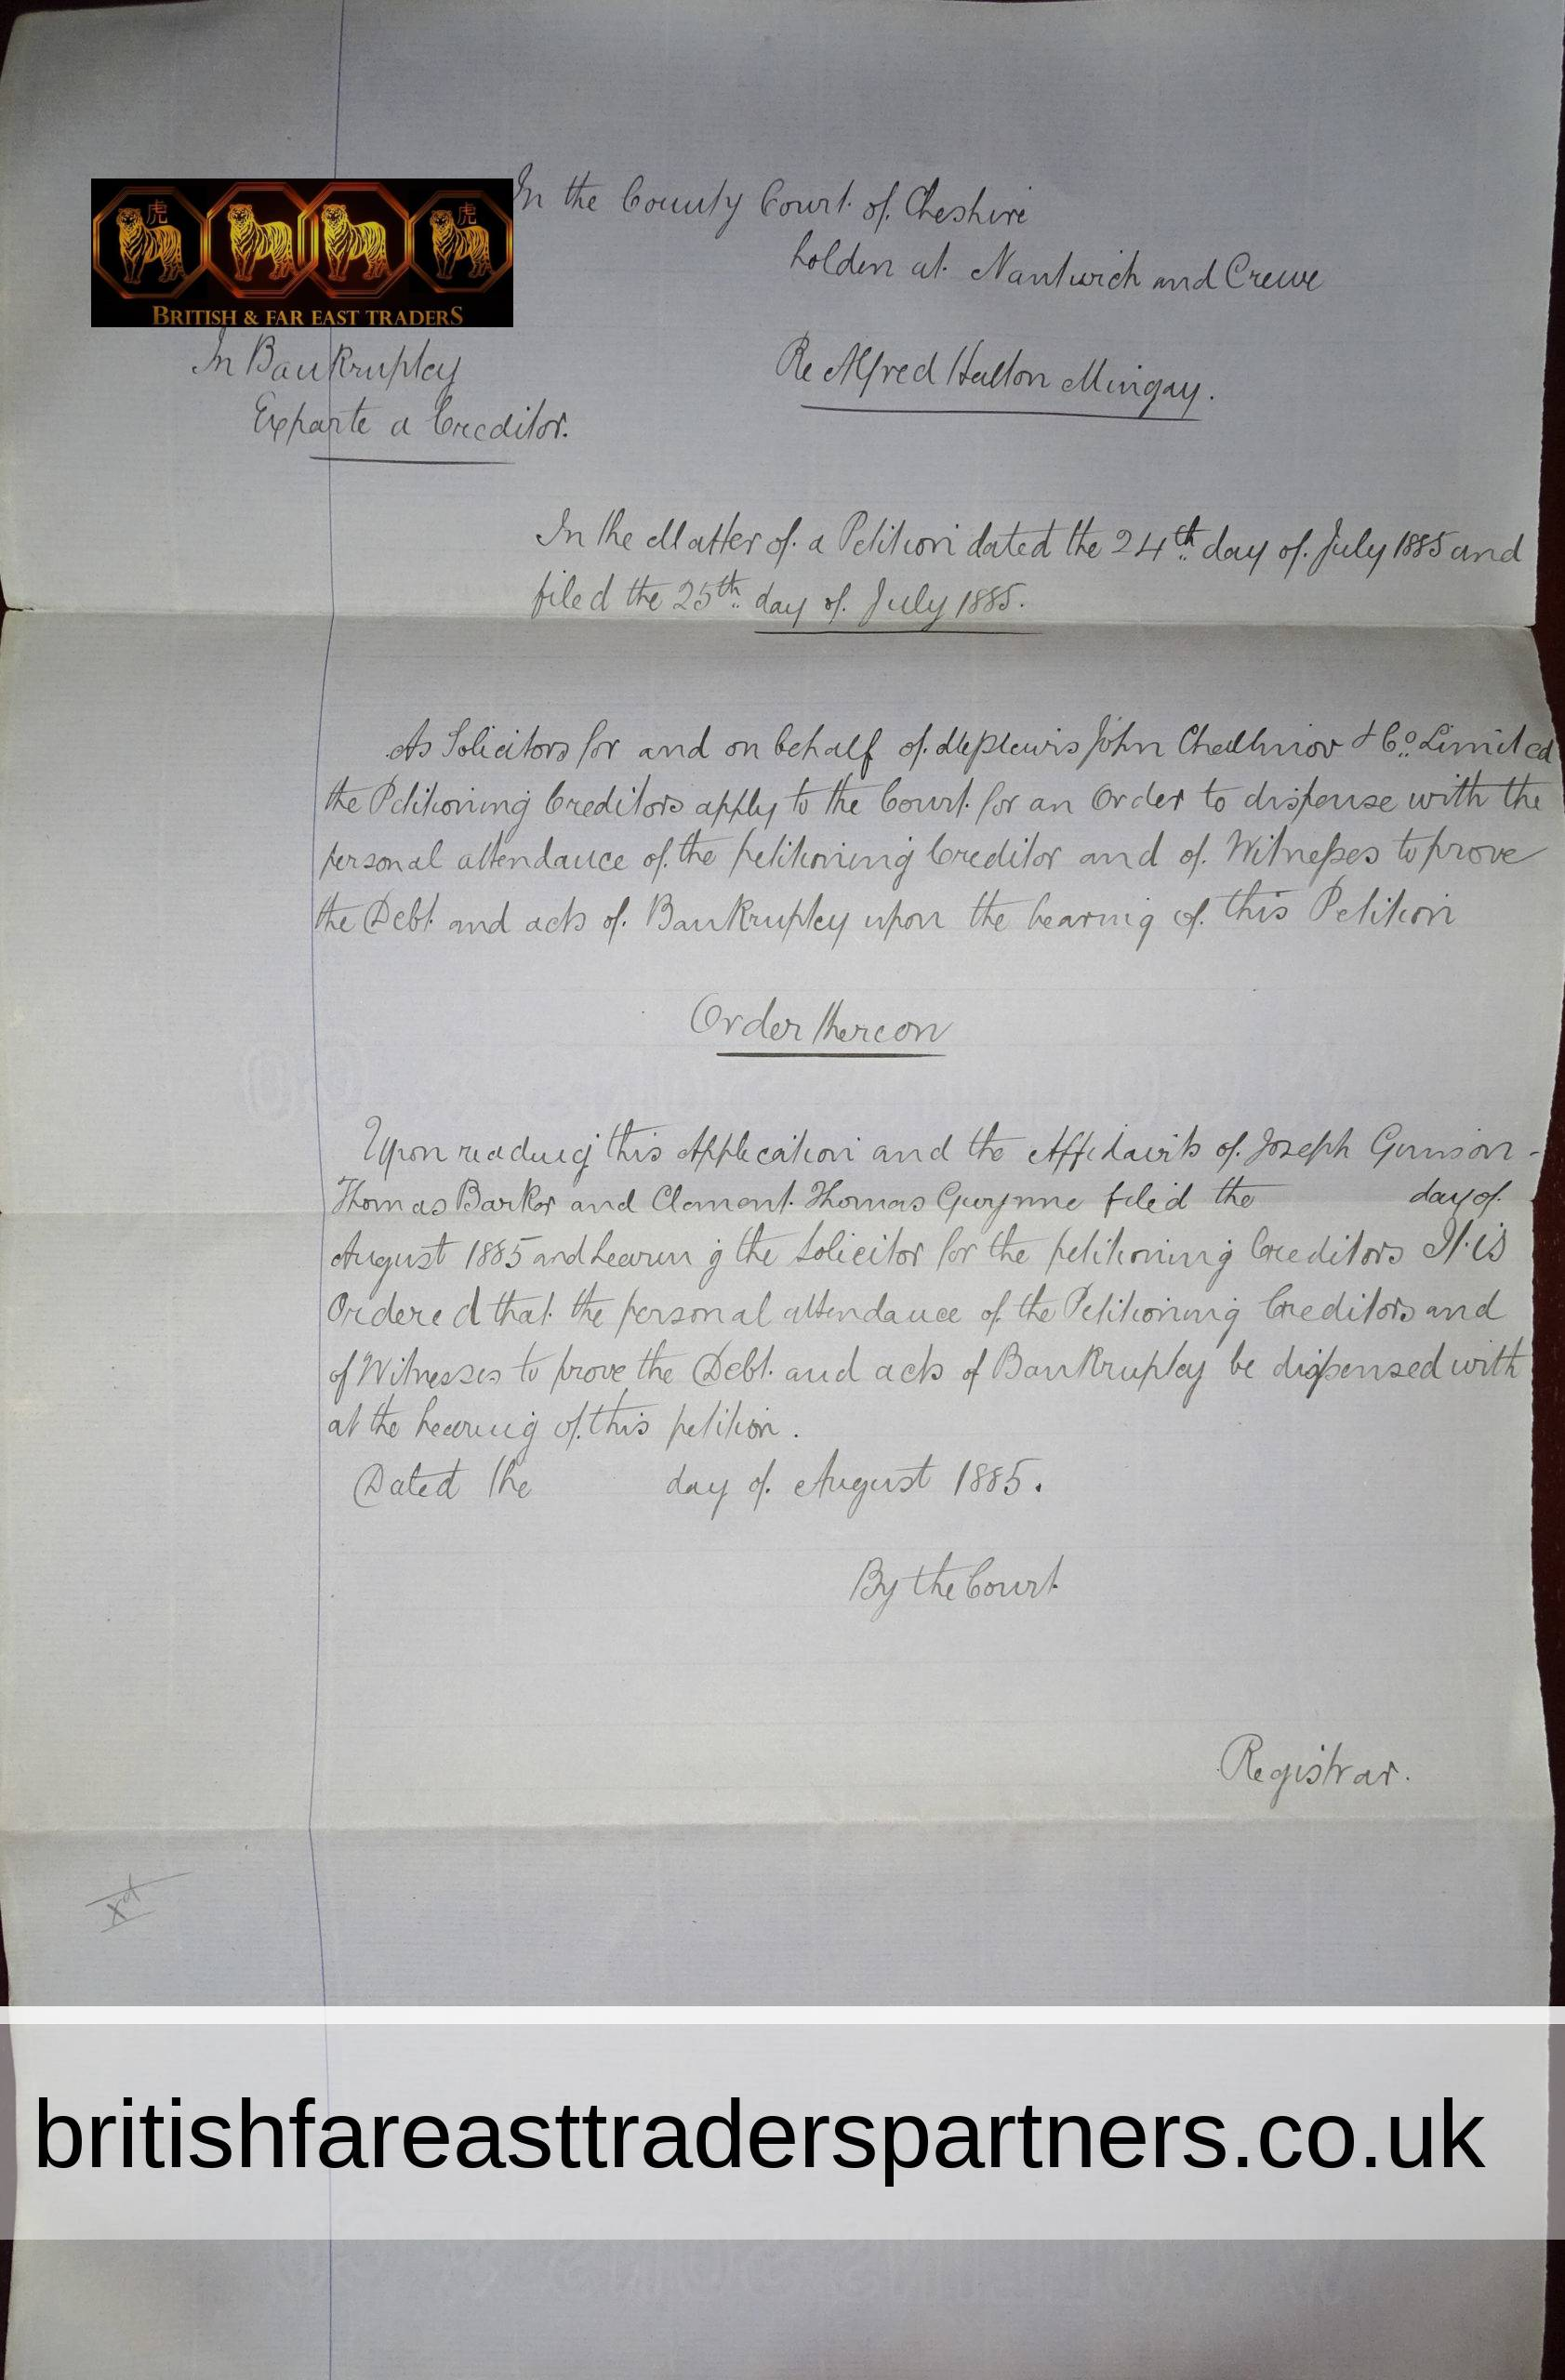 ANTIQUE AUGUST 1885 VICTORIAN DOCUMENT Ex Parte Creditors BANKRUPTCY Petition COUNTY COURT of CHESHIRE Re Alfred Hallon Mingay SOLICITORS John Challinor & Co Limited COLLECTIBLES LEGAL RESEARCH EPHEMERA LEGAL LETTER